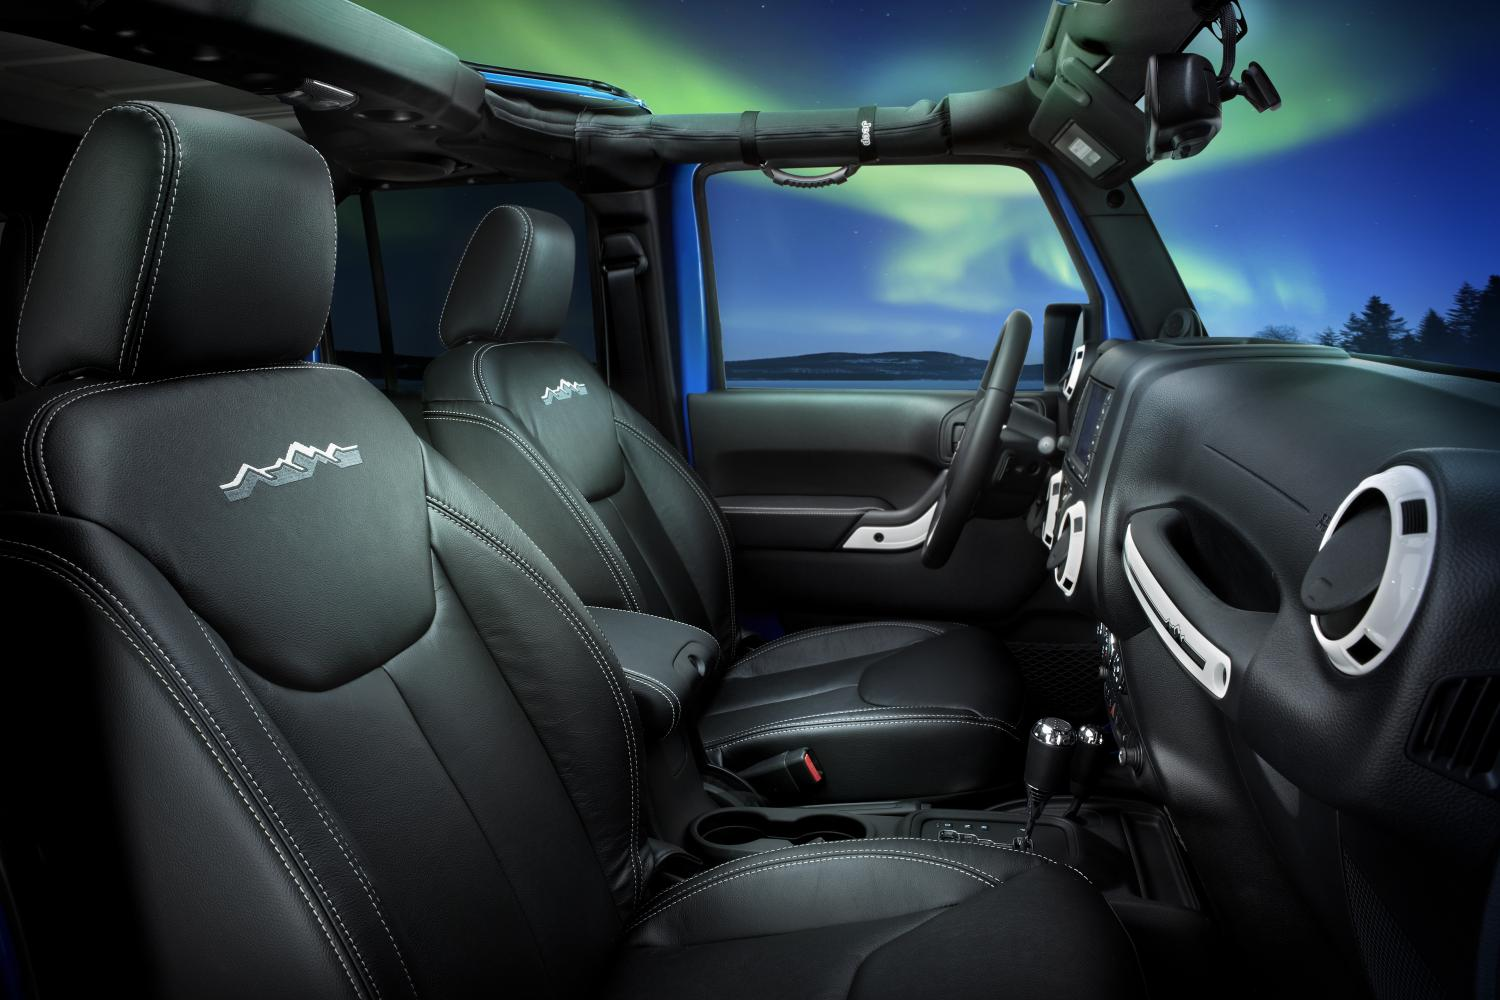 2014 Jeep Wrangler Polar Edition Launches In North America Jk Leather Seats